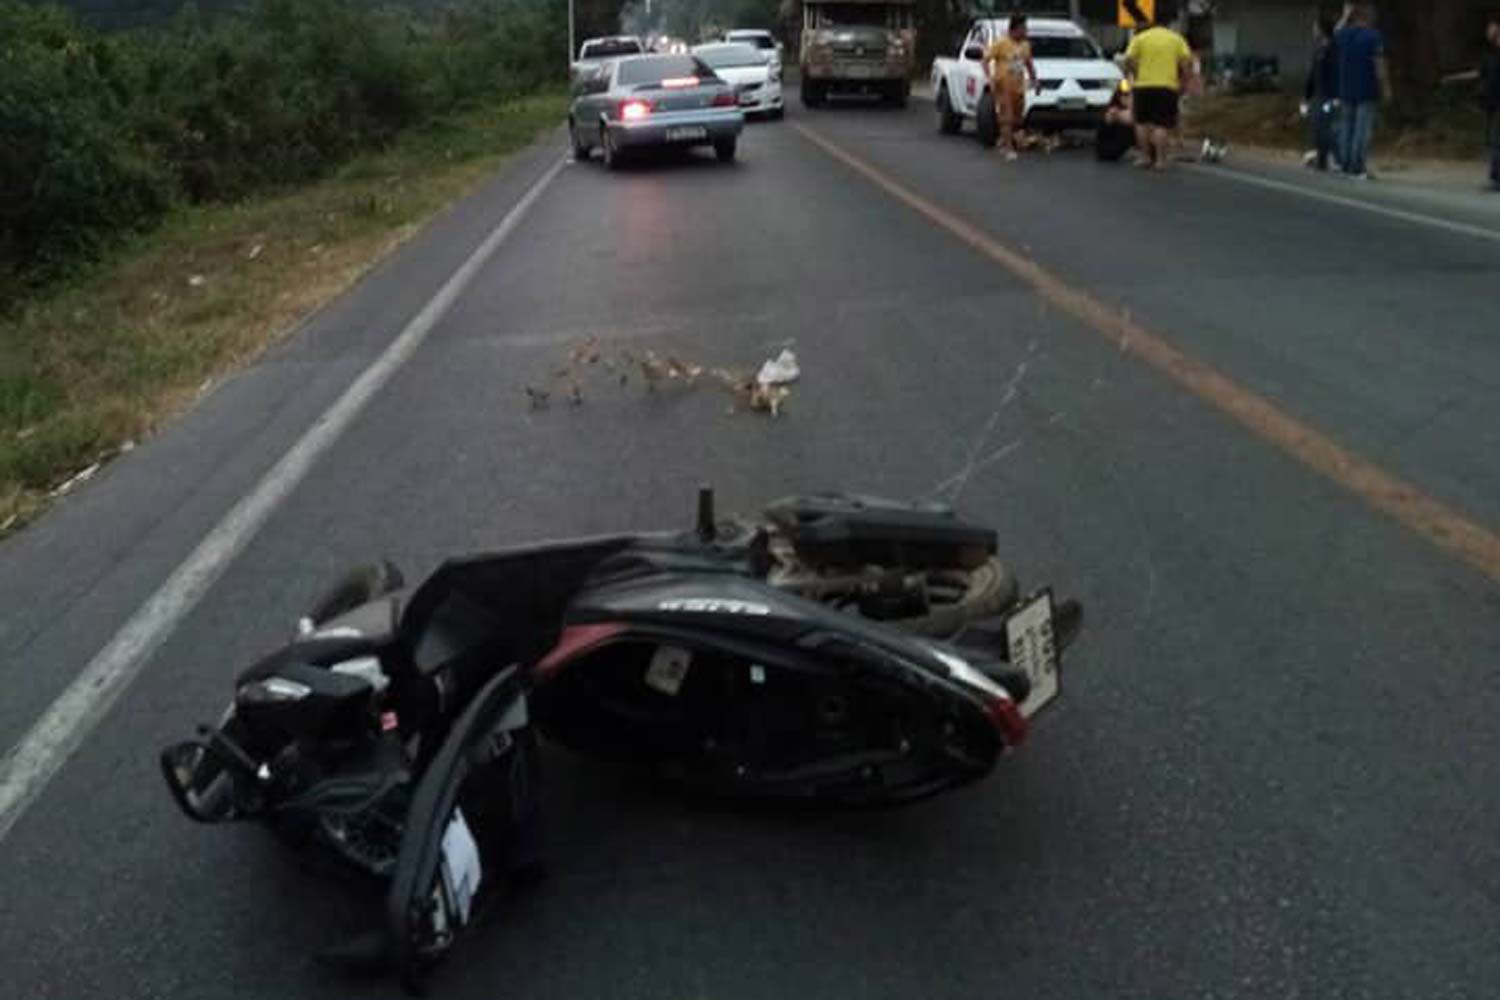 The tourists' motorbike is left lying on the Kanchanaburi-Dan Ma Kham Tia road in Kanchanaburi's Muang district after the two women were swept off it by a cable hanging  across the road at neck level on Sunday. (Photo by Piyarat Chongcharoen)